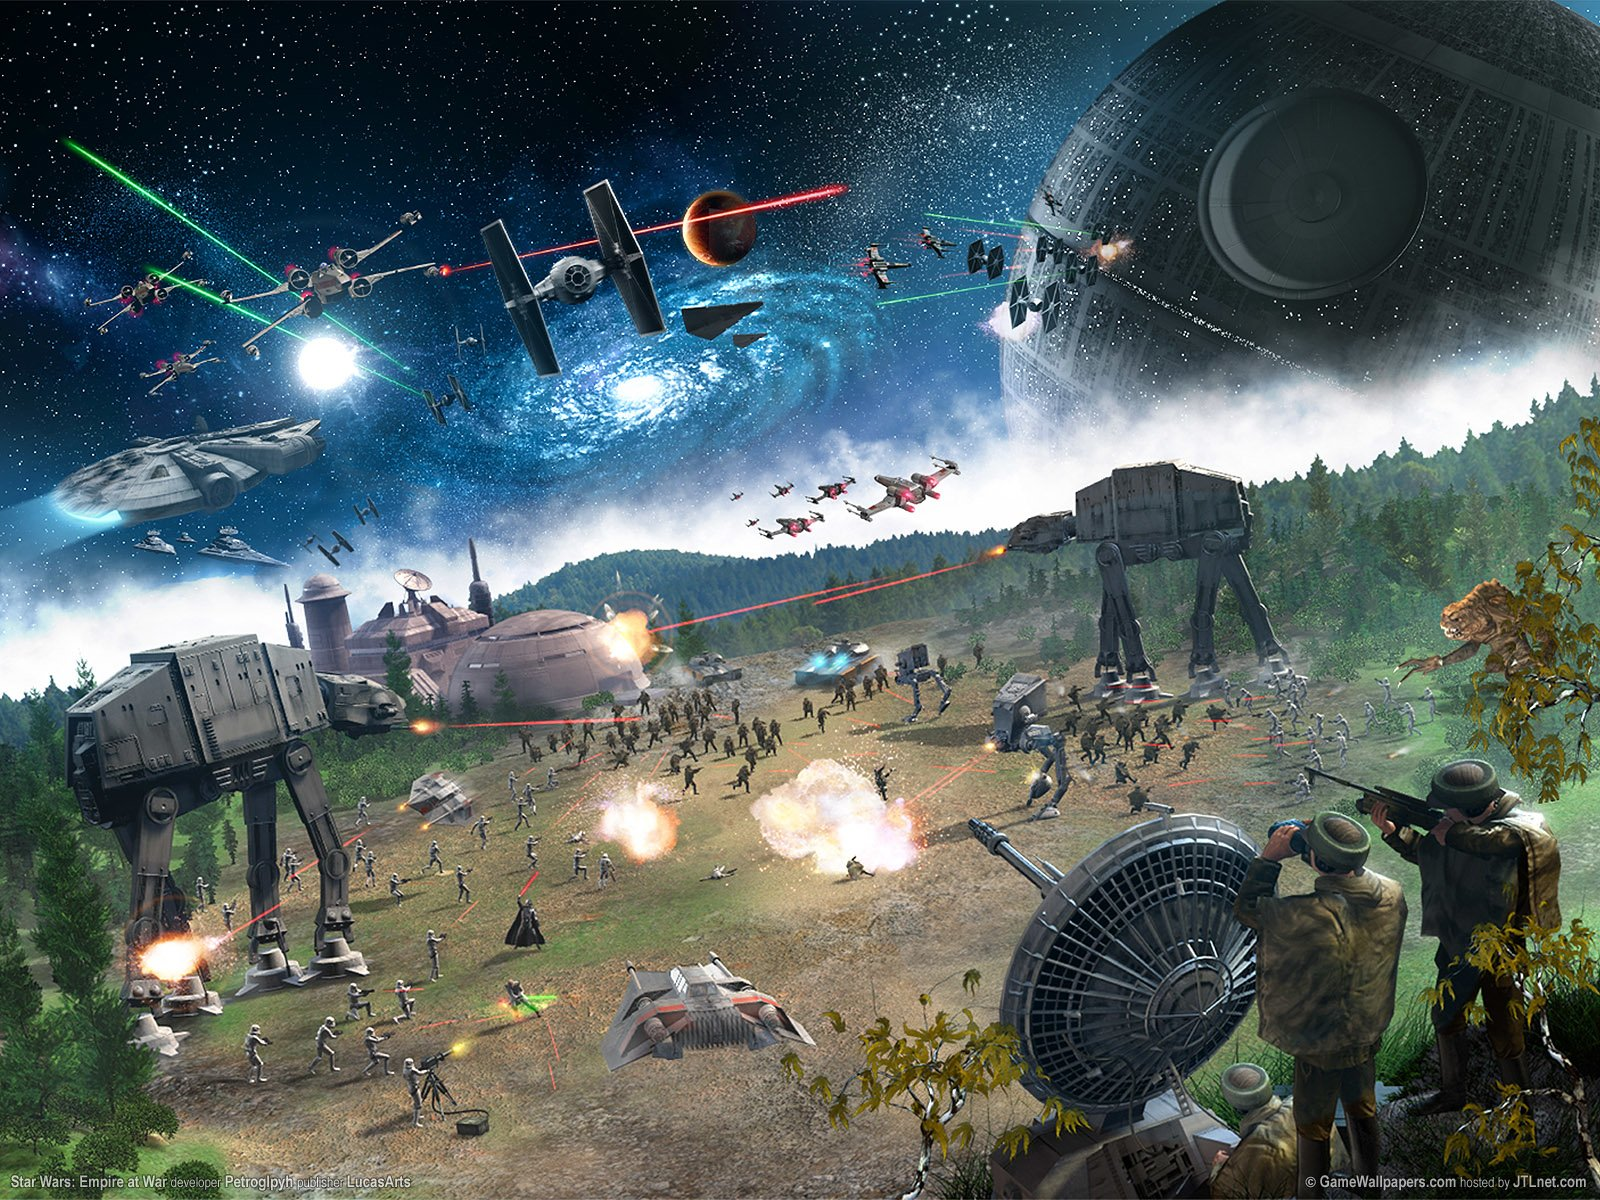 645080 Title Star Wars Battle Scene Video Game Star Star Wars Empire At War 1600x1200 Download Hd Wallpaper Wallpapertip